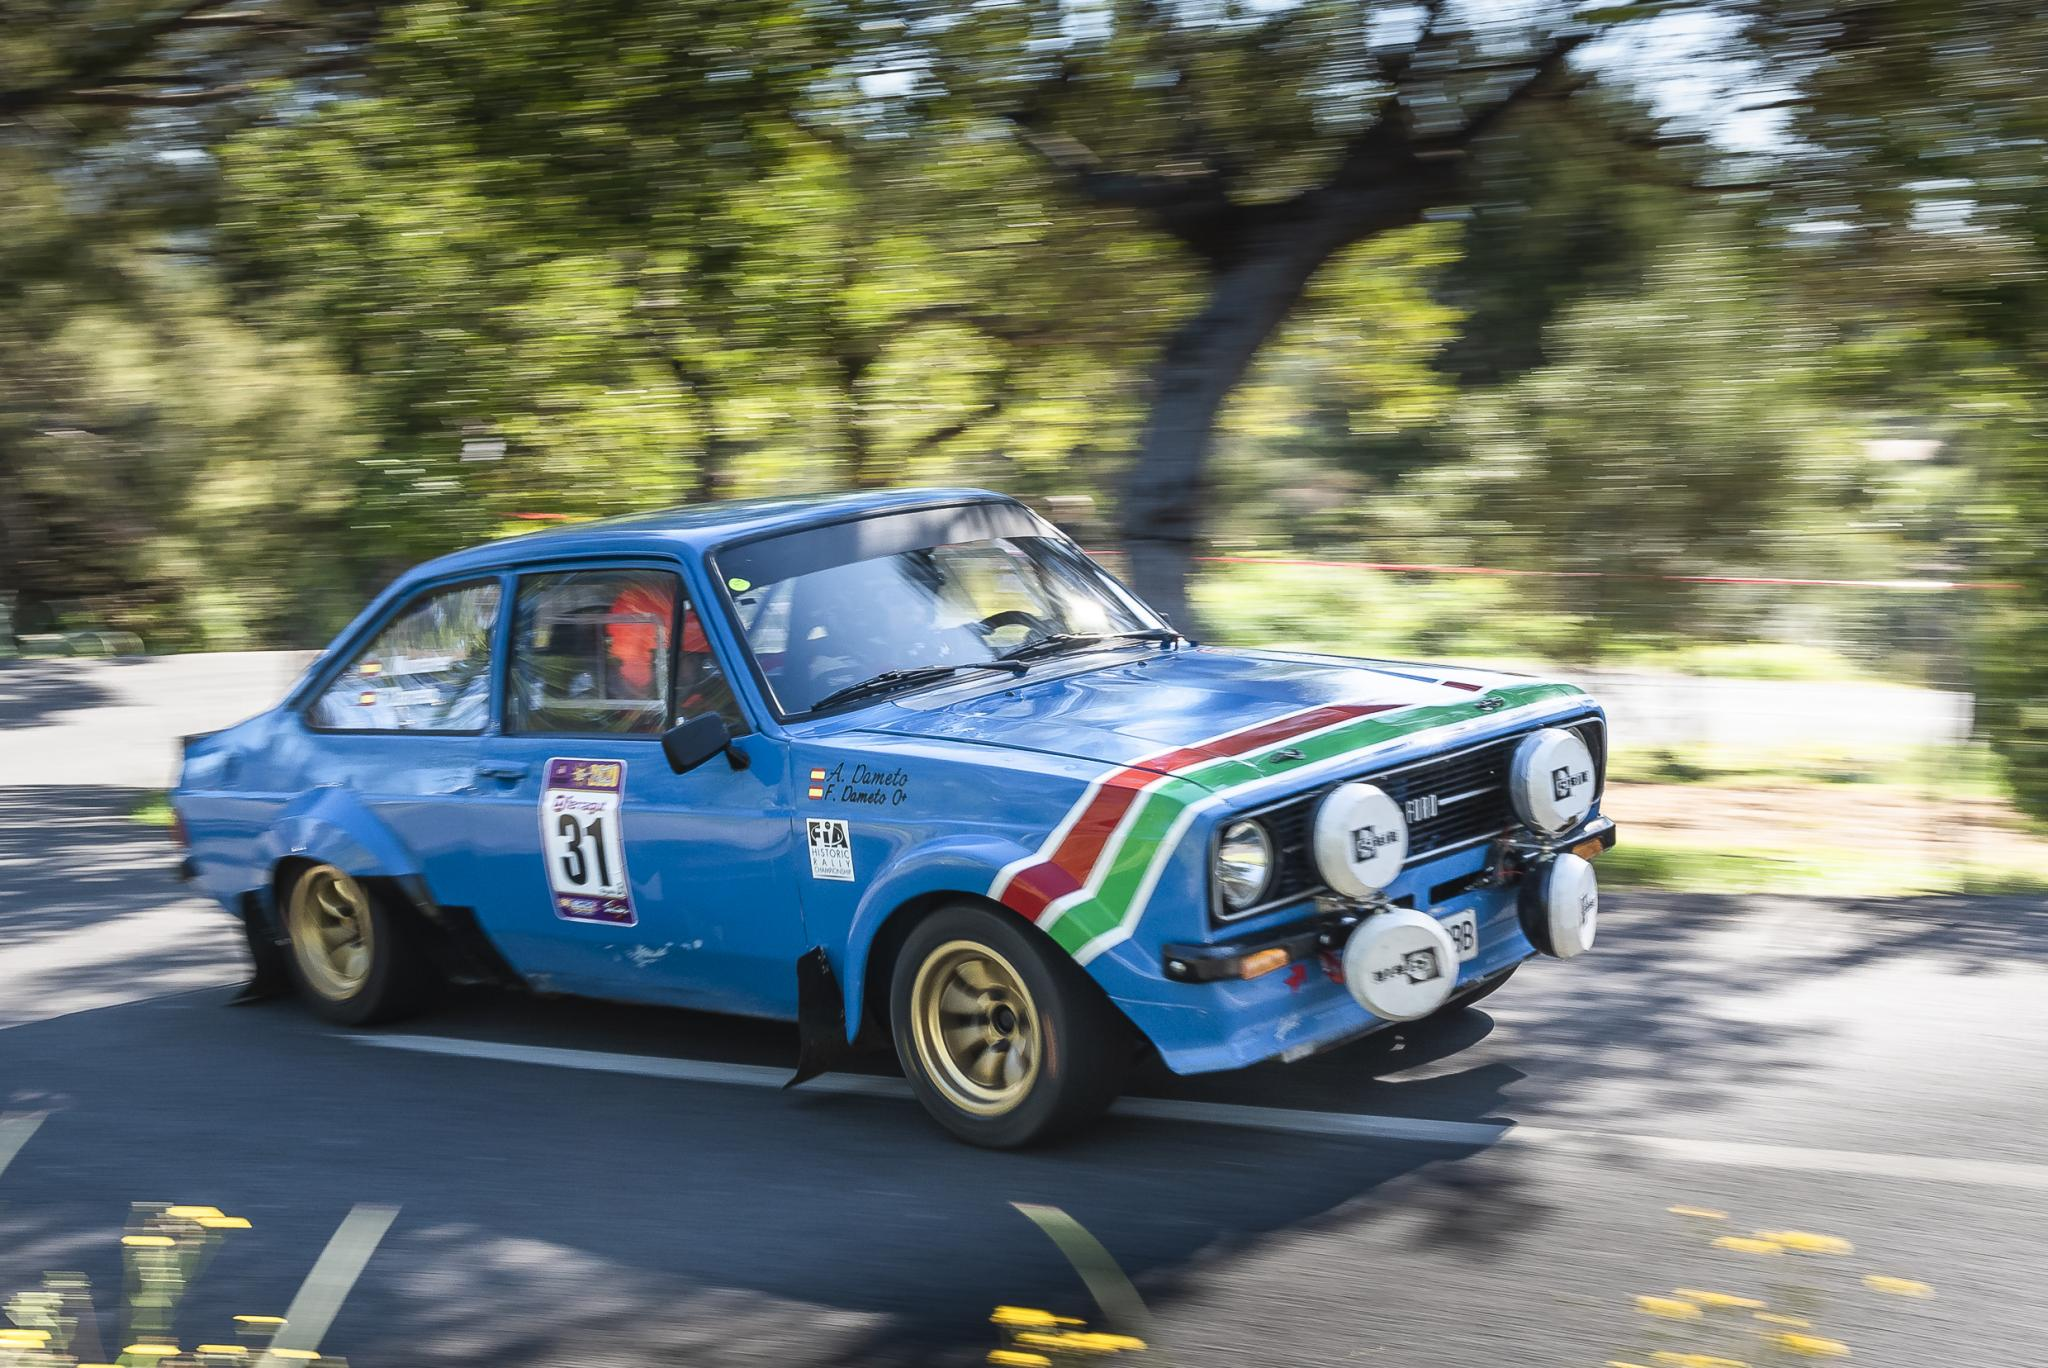 Another classic competitor, Ford Escort with all the period rally gear.